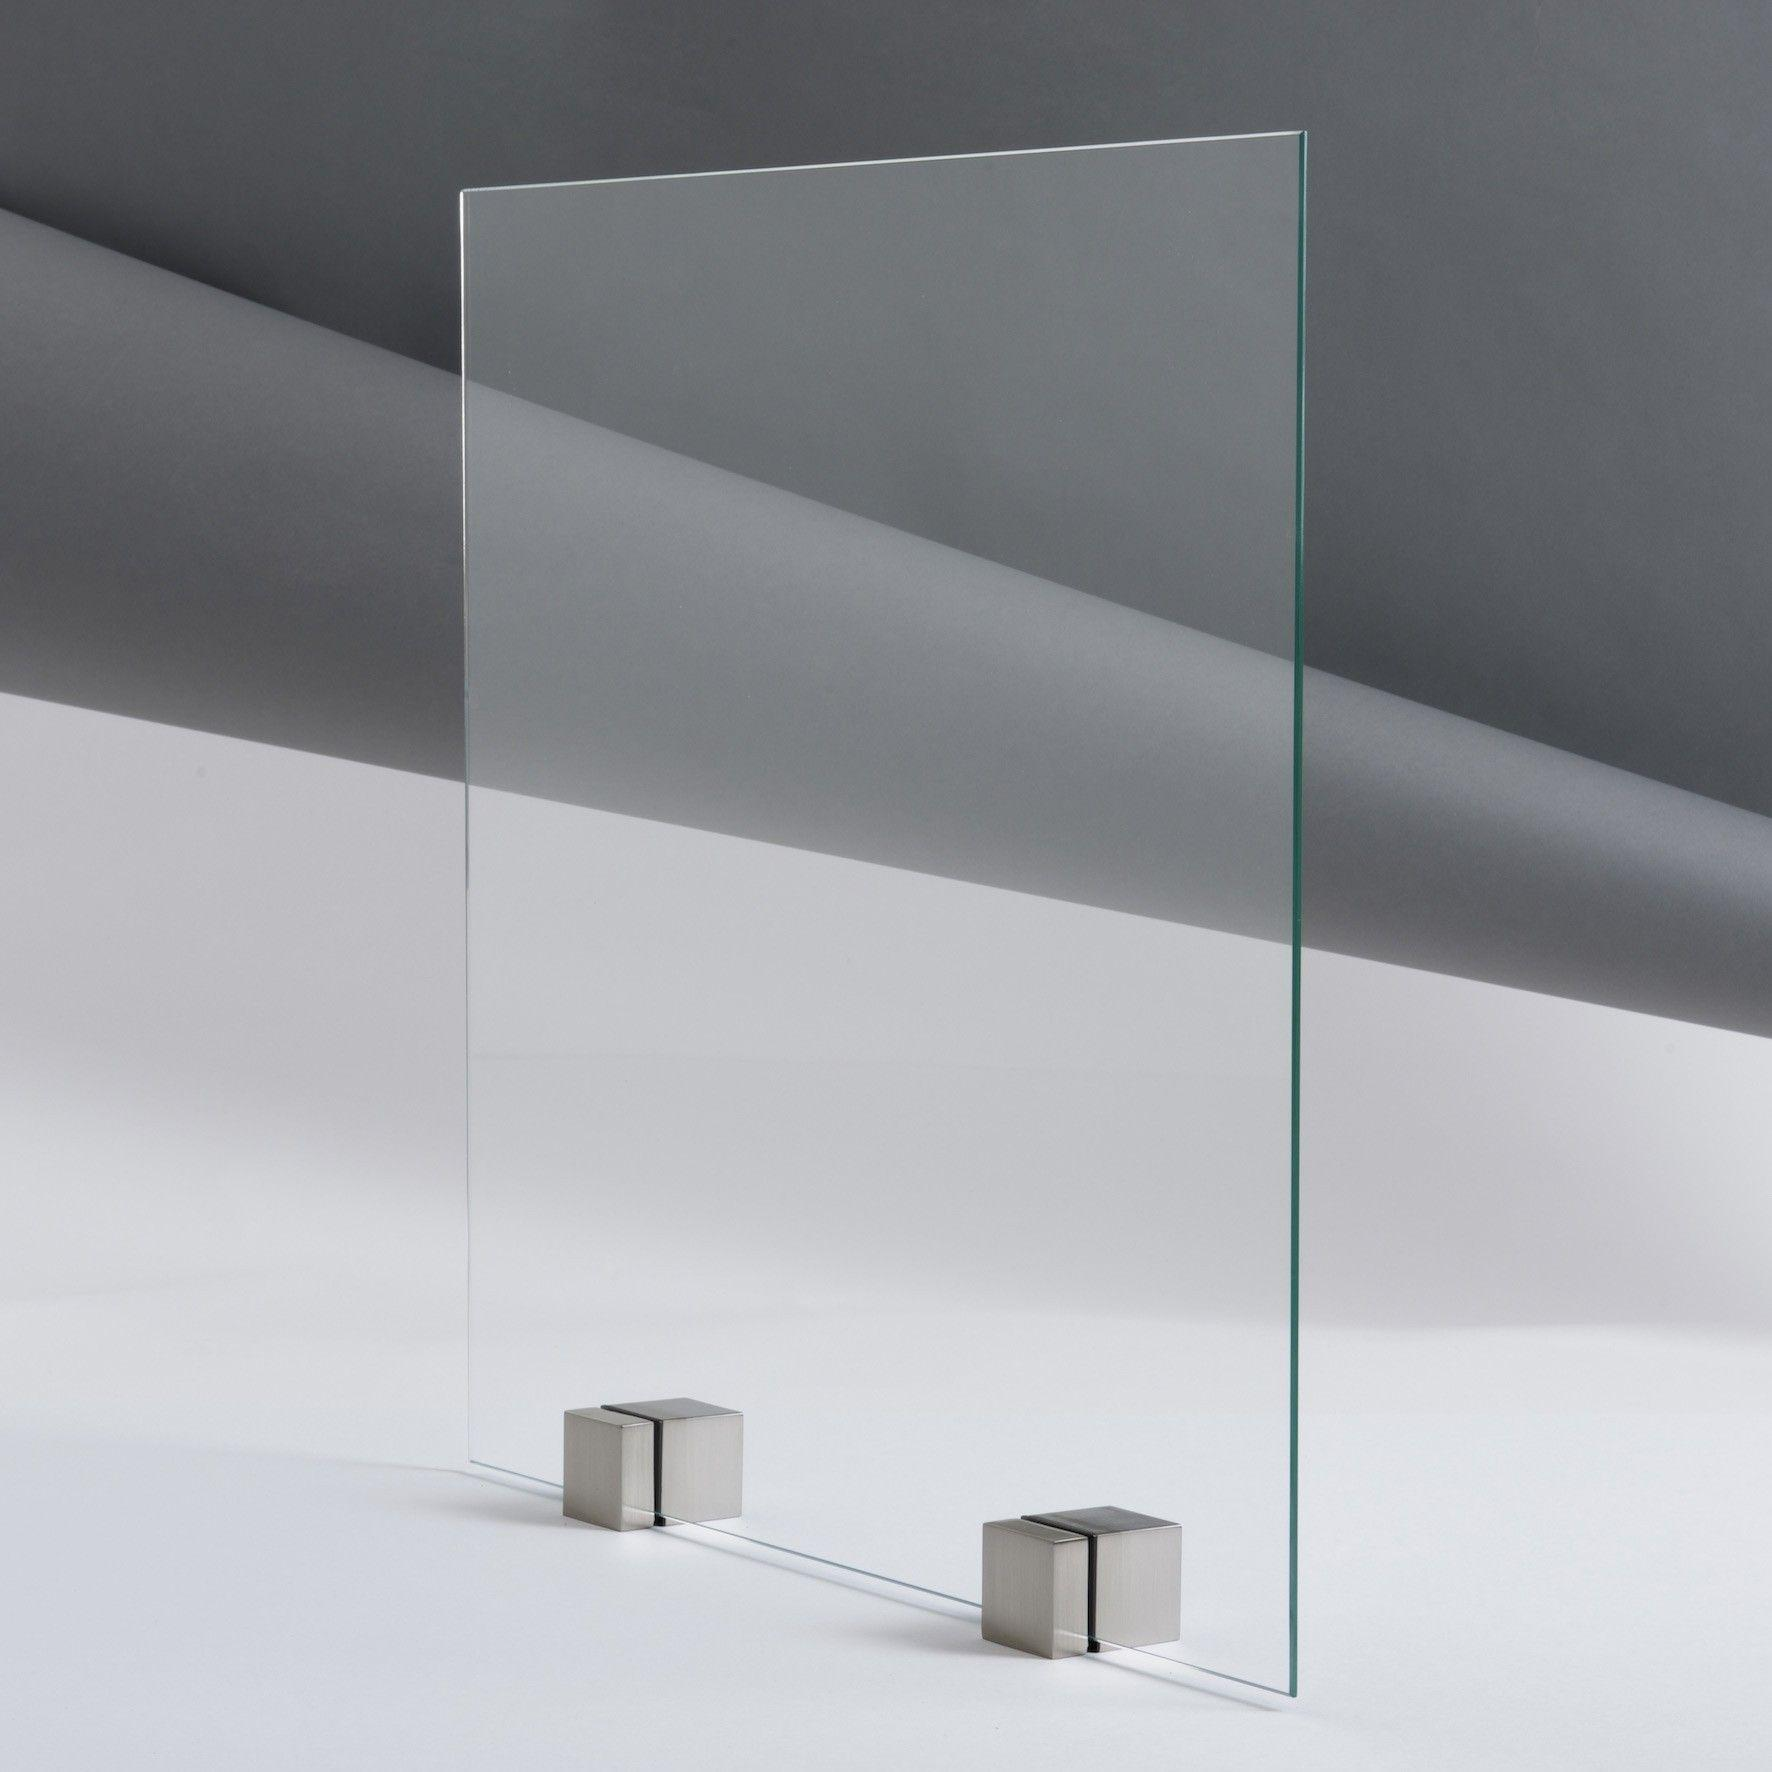 porte en verre porte d 39 int rieur et porte de placard en. Black Bedroom Furniture Sets. Home Design Ideas